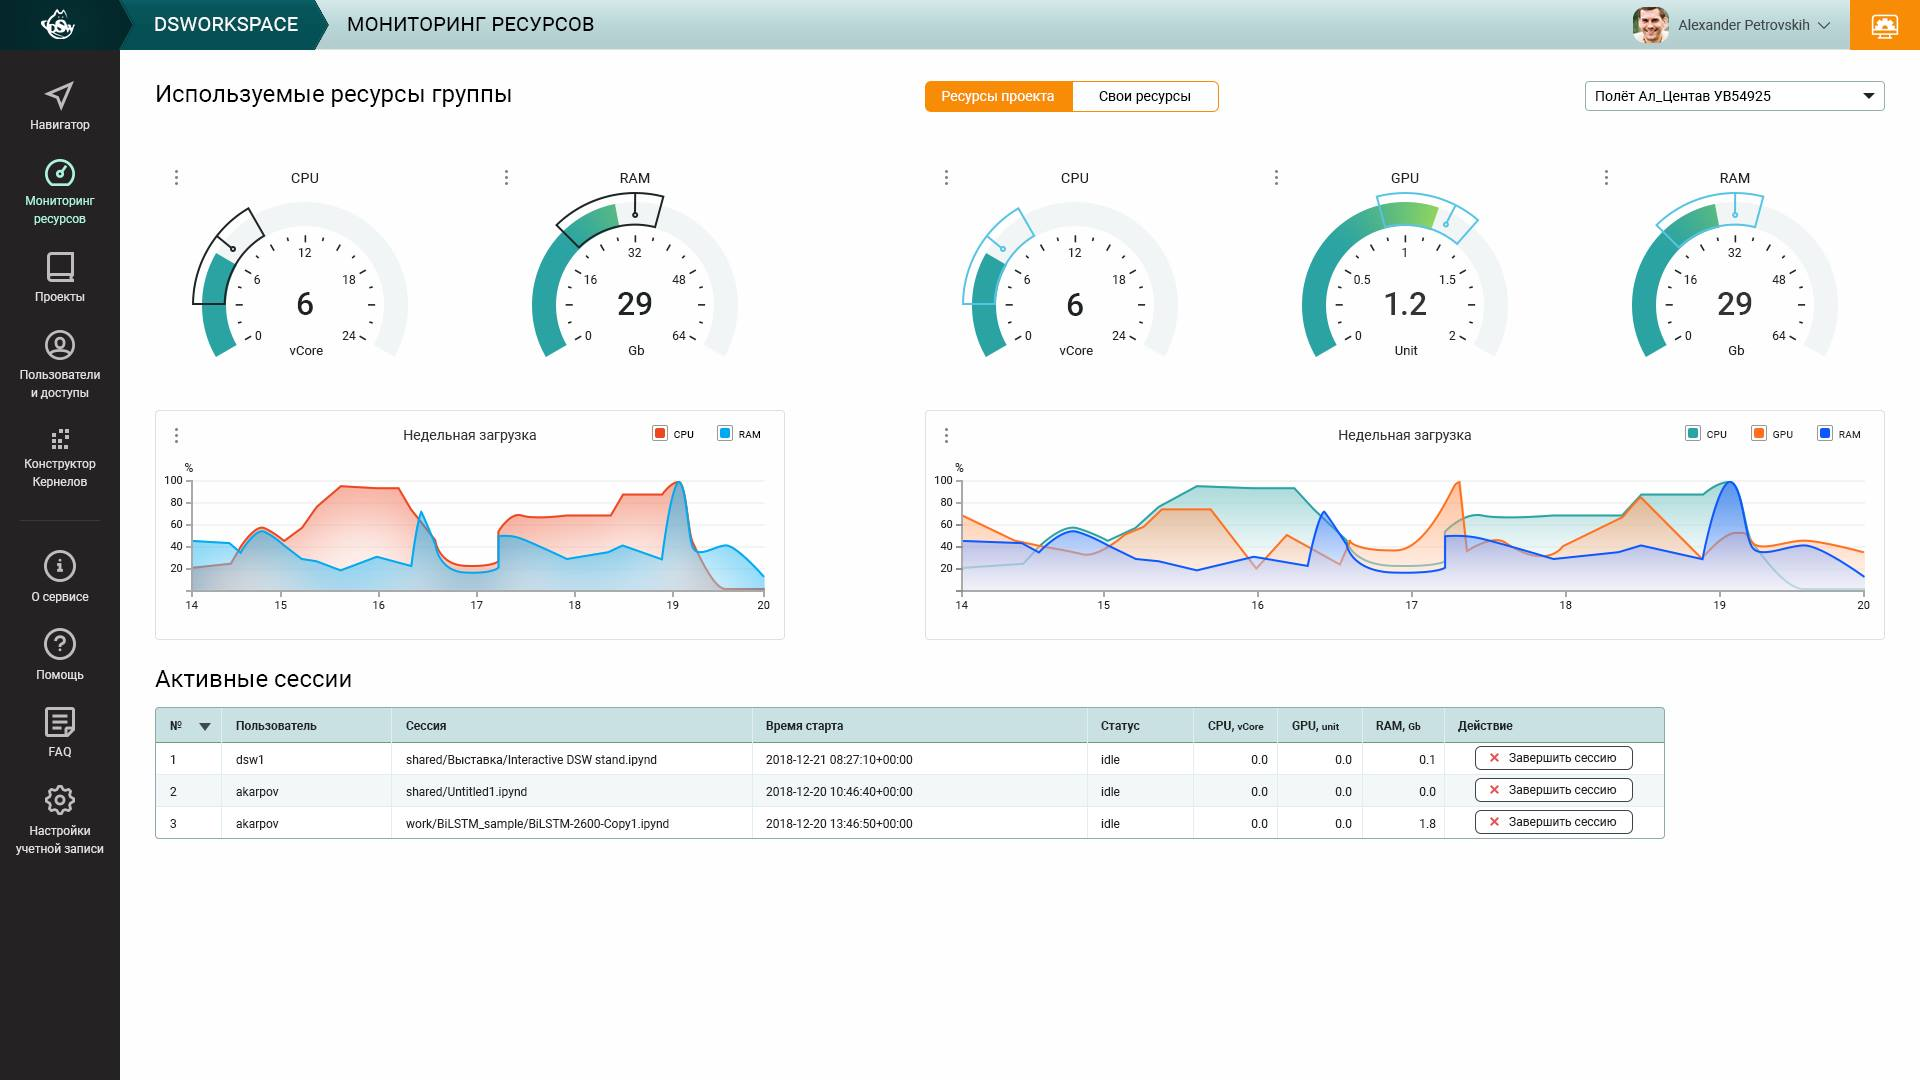 DSW Monitoring interface example